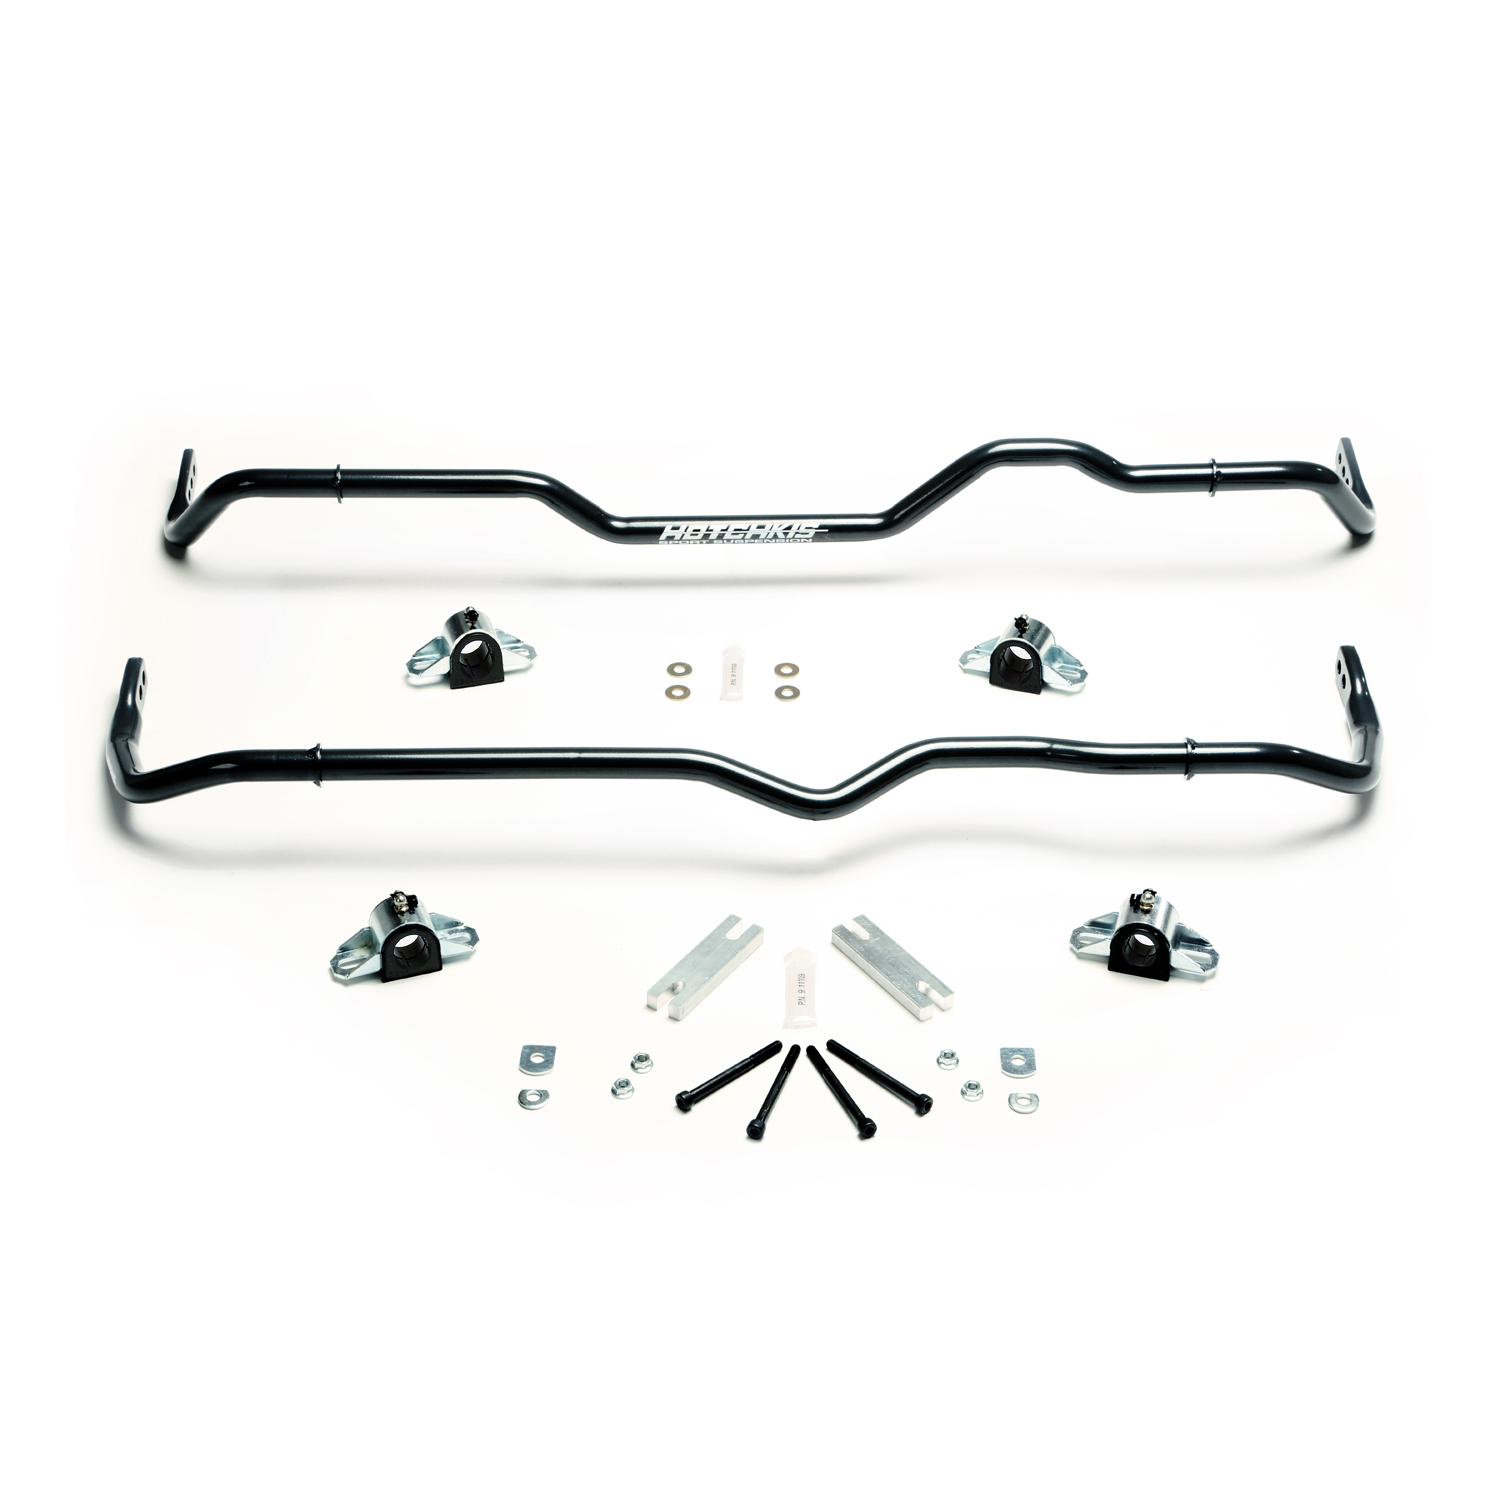 2012+ VW Golf R Sport Sway Bar Set from Hotchkis Sport Suspension